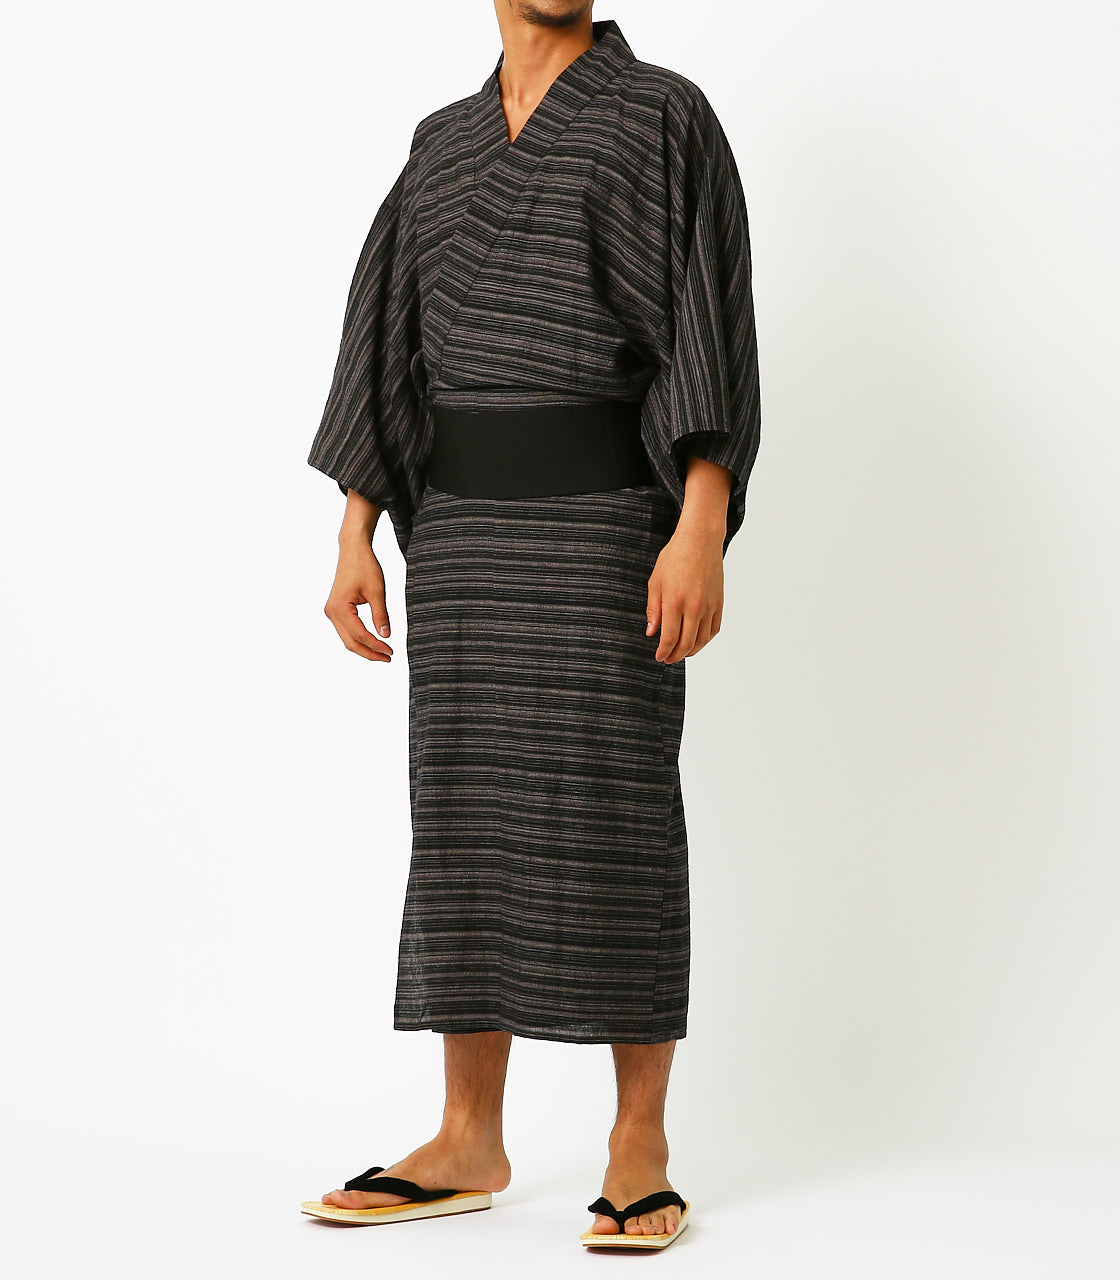 LINEN COTTON YUKATA 詳細画像 BLK 1